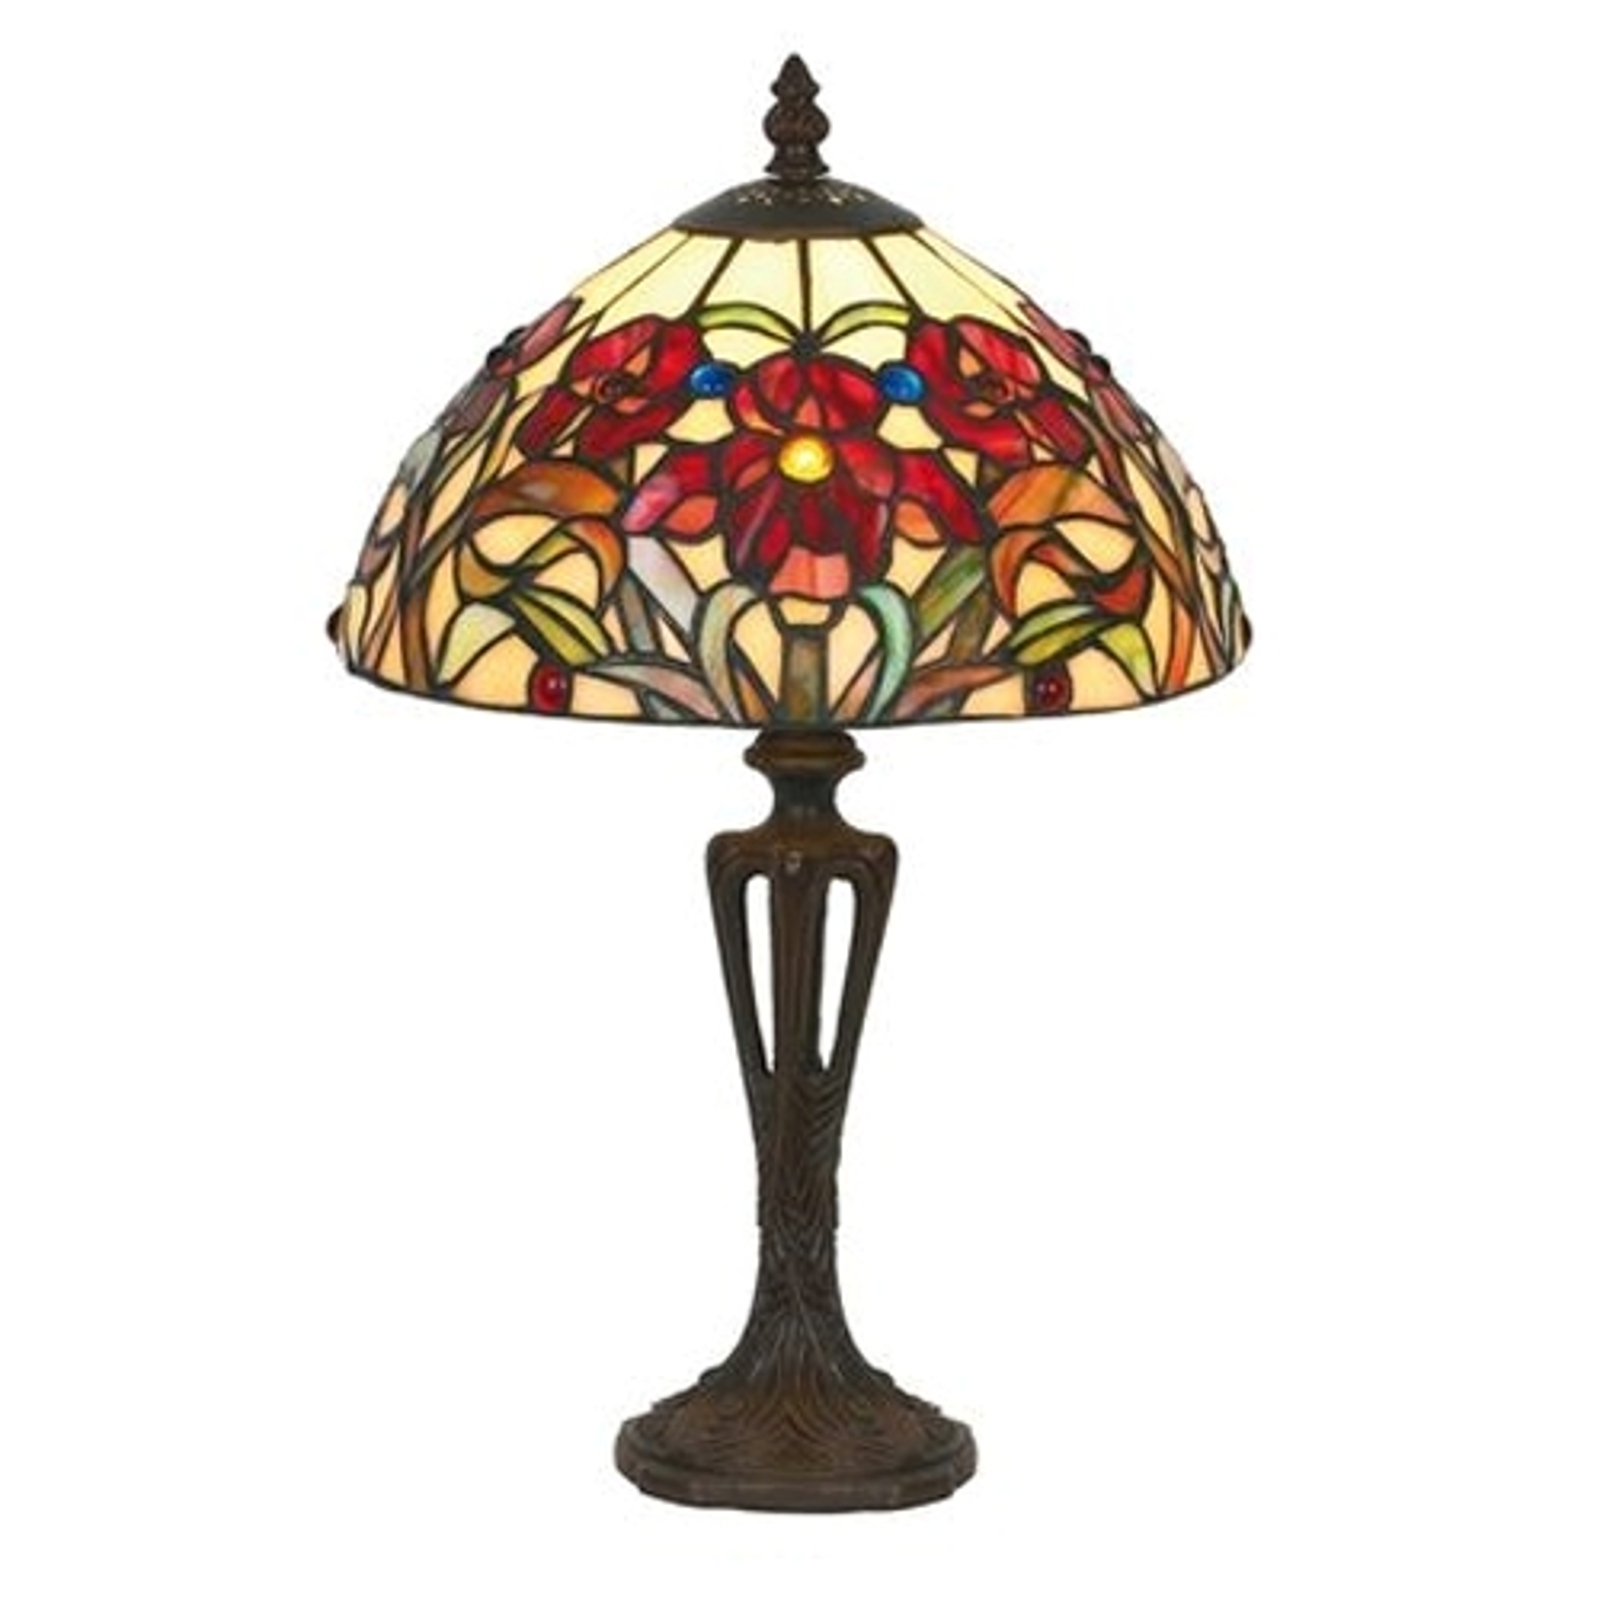 ELINE classic Tiffany style table lamp, 40 cm_1032169_1